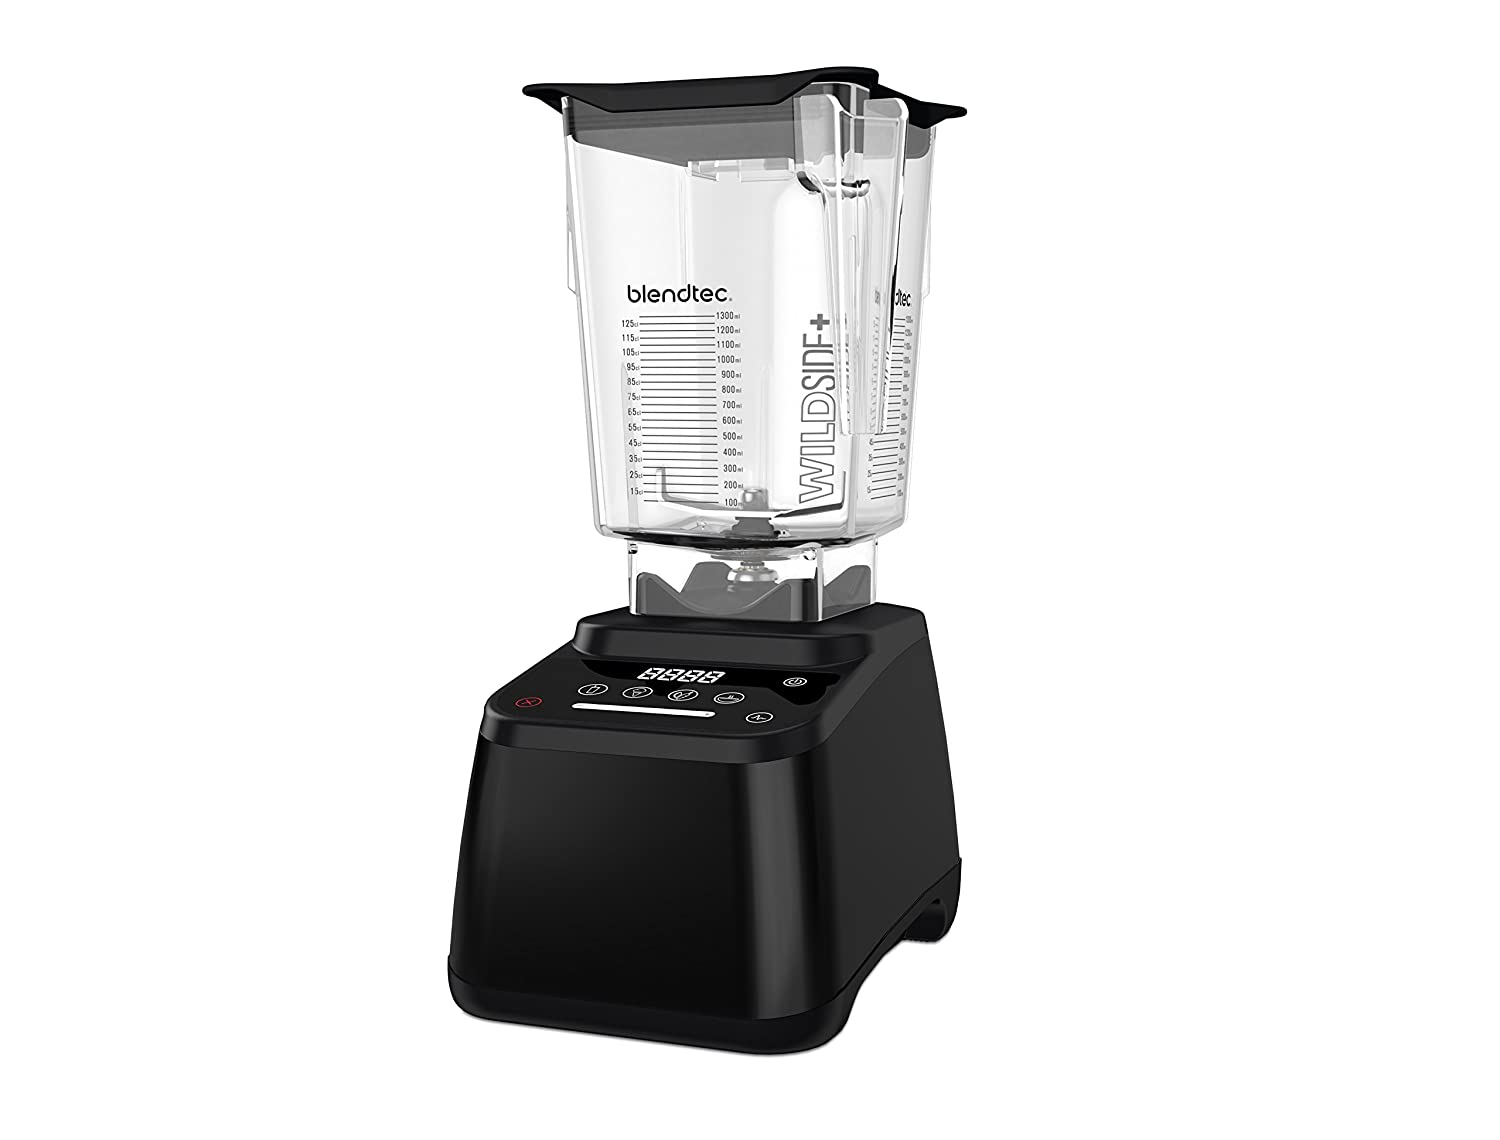 Blendtec Designer 625 Blender - WildSide+ Jar (90 oz) - Professional-Grade Power - 4 Pre-Programmed Cycles - 6-Speeds - Renewed - Black